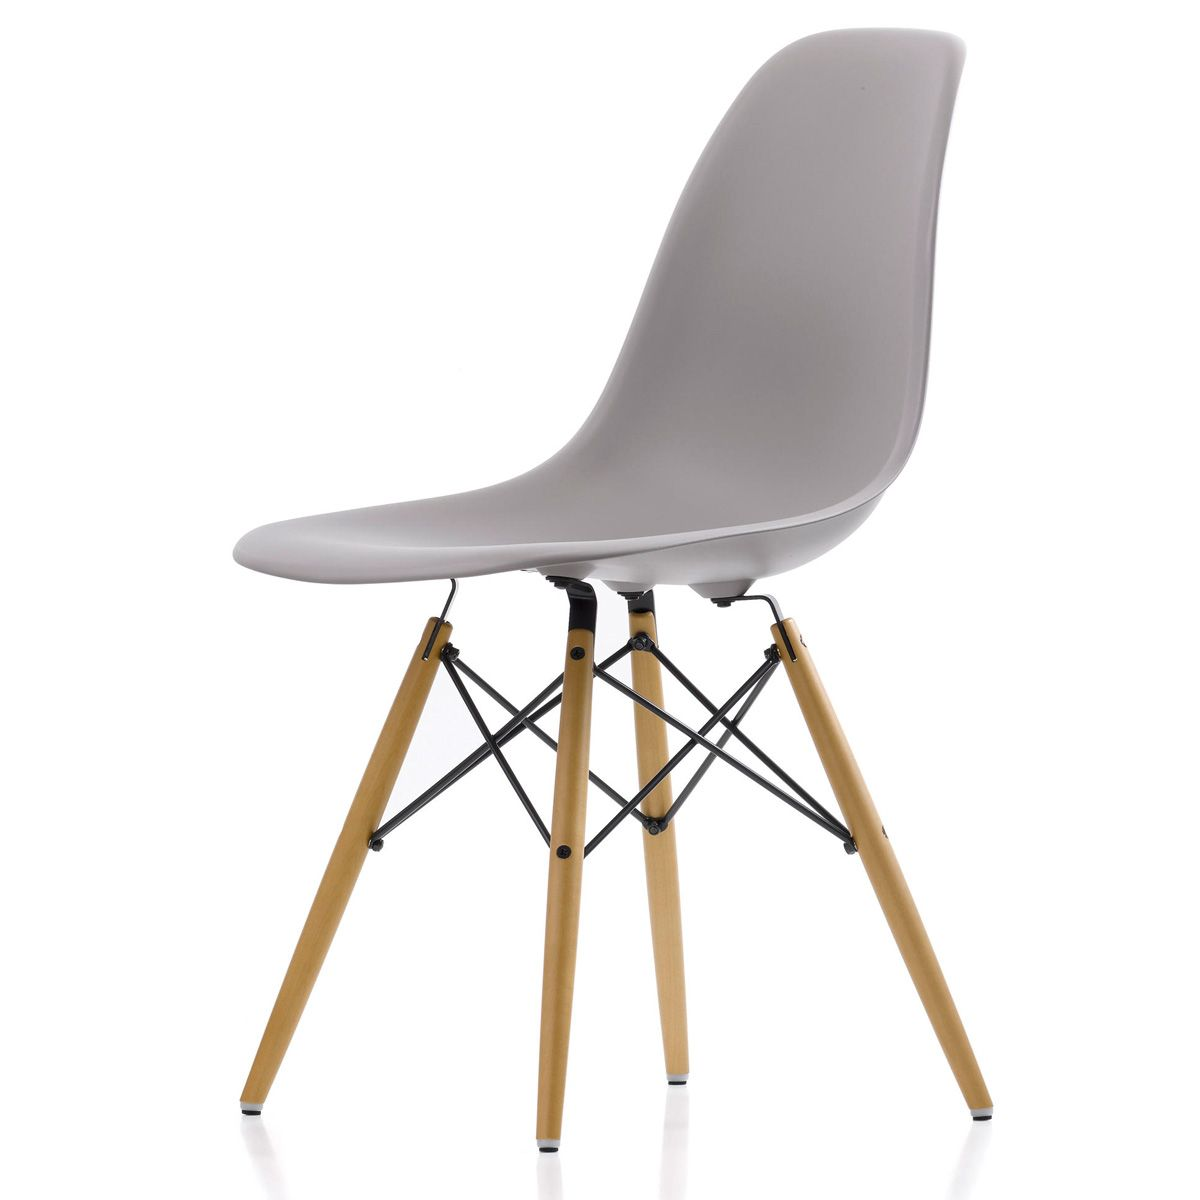 eames bucket chair red dining chairs nz plastic dsw vitra original in the naharro online store